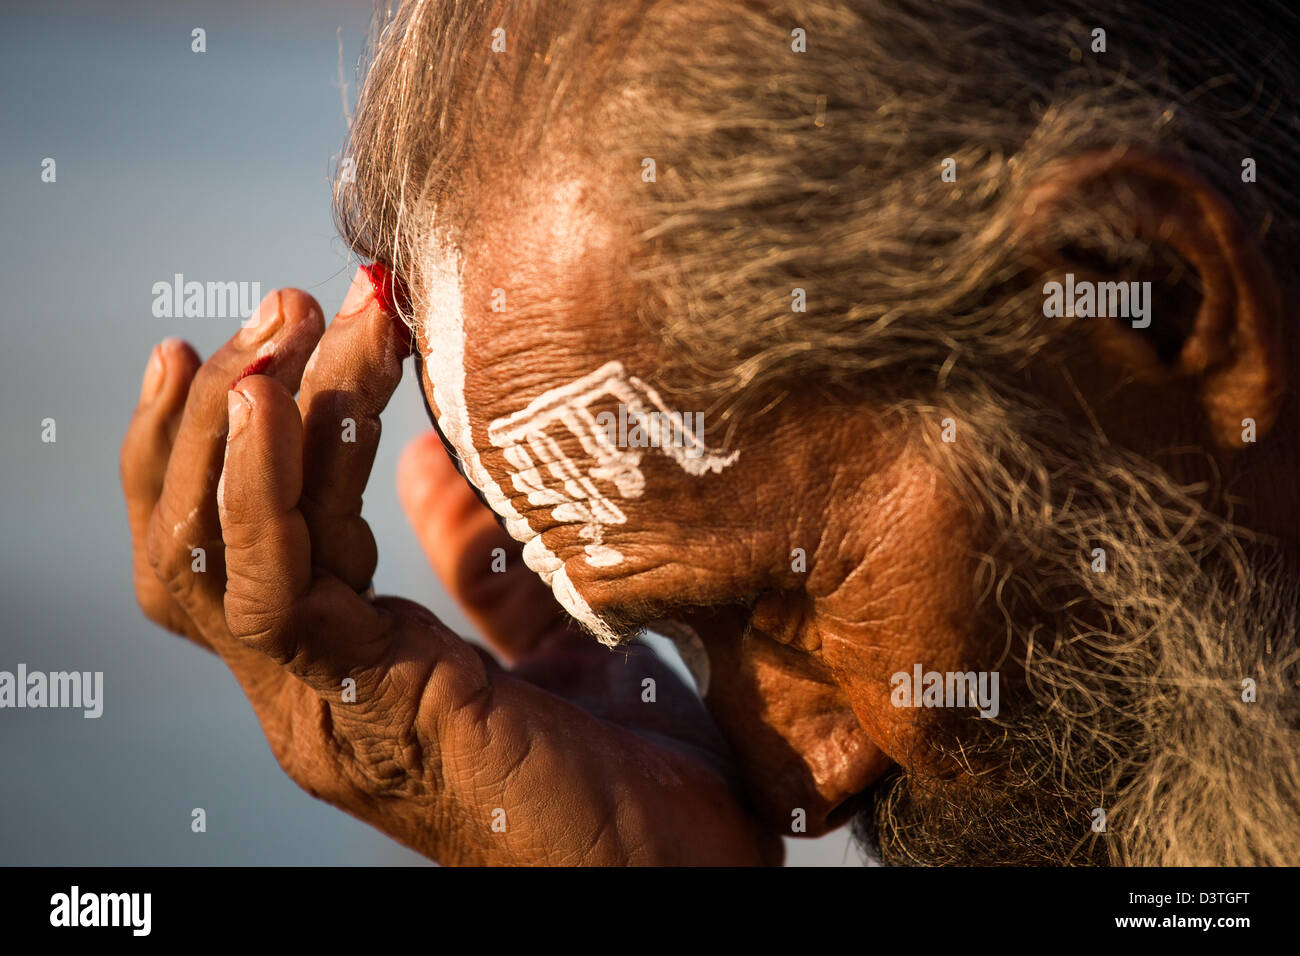 Sadhu painting his face with the word for God on his forehead at the Kumbh Mela, Allahabad, India - Stock Image